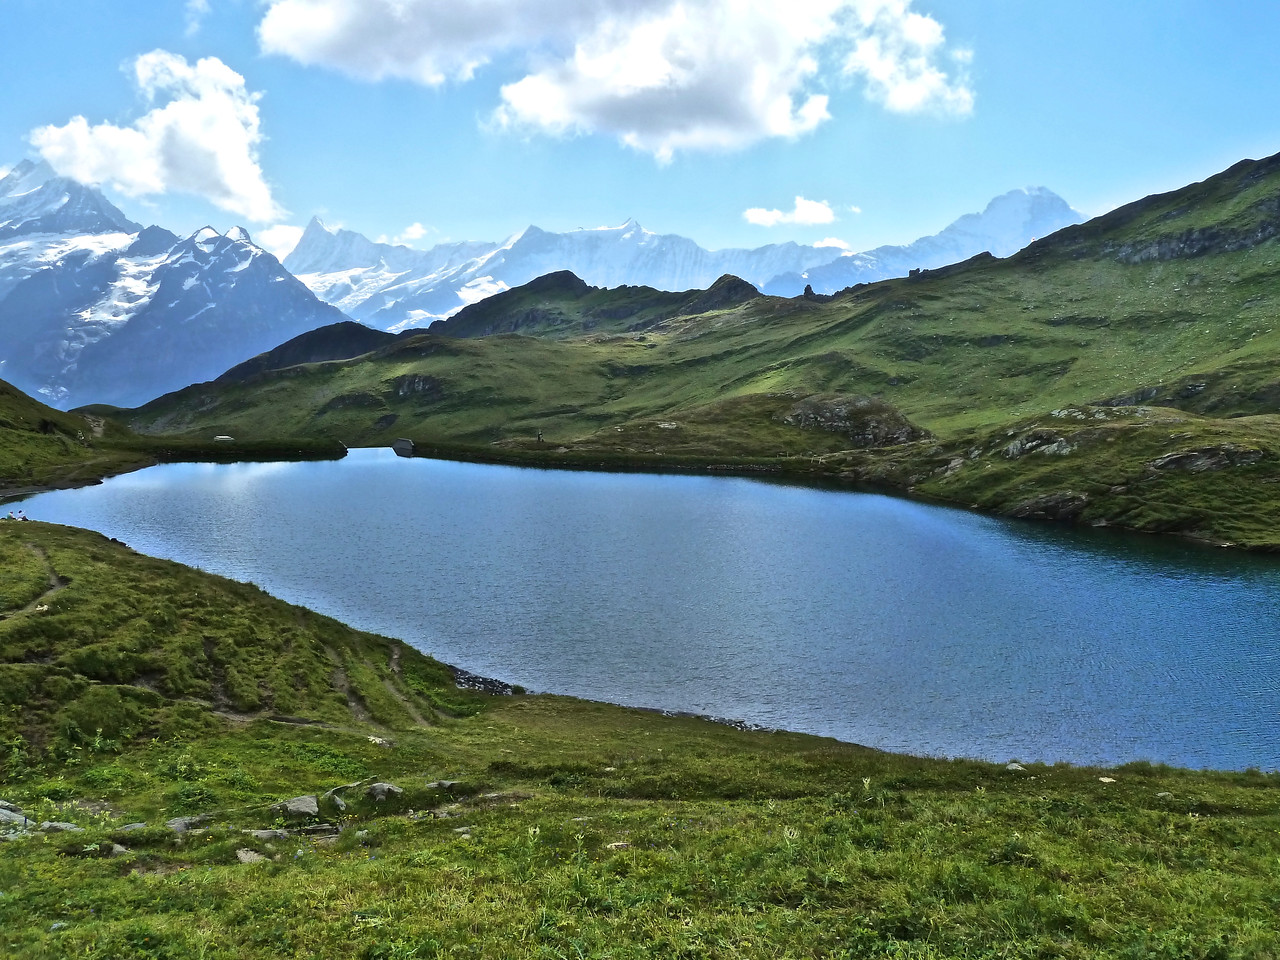 The Bachsee with the Eiger on the far right!